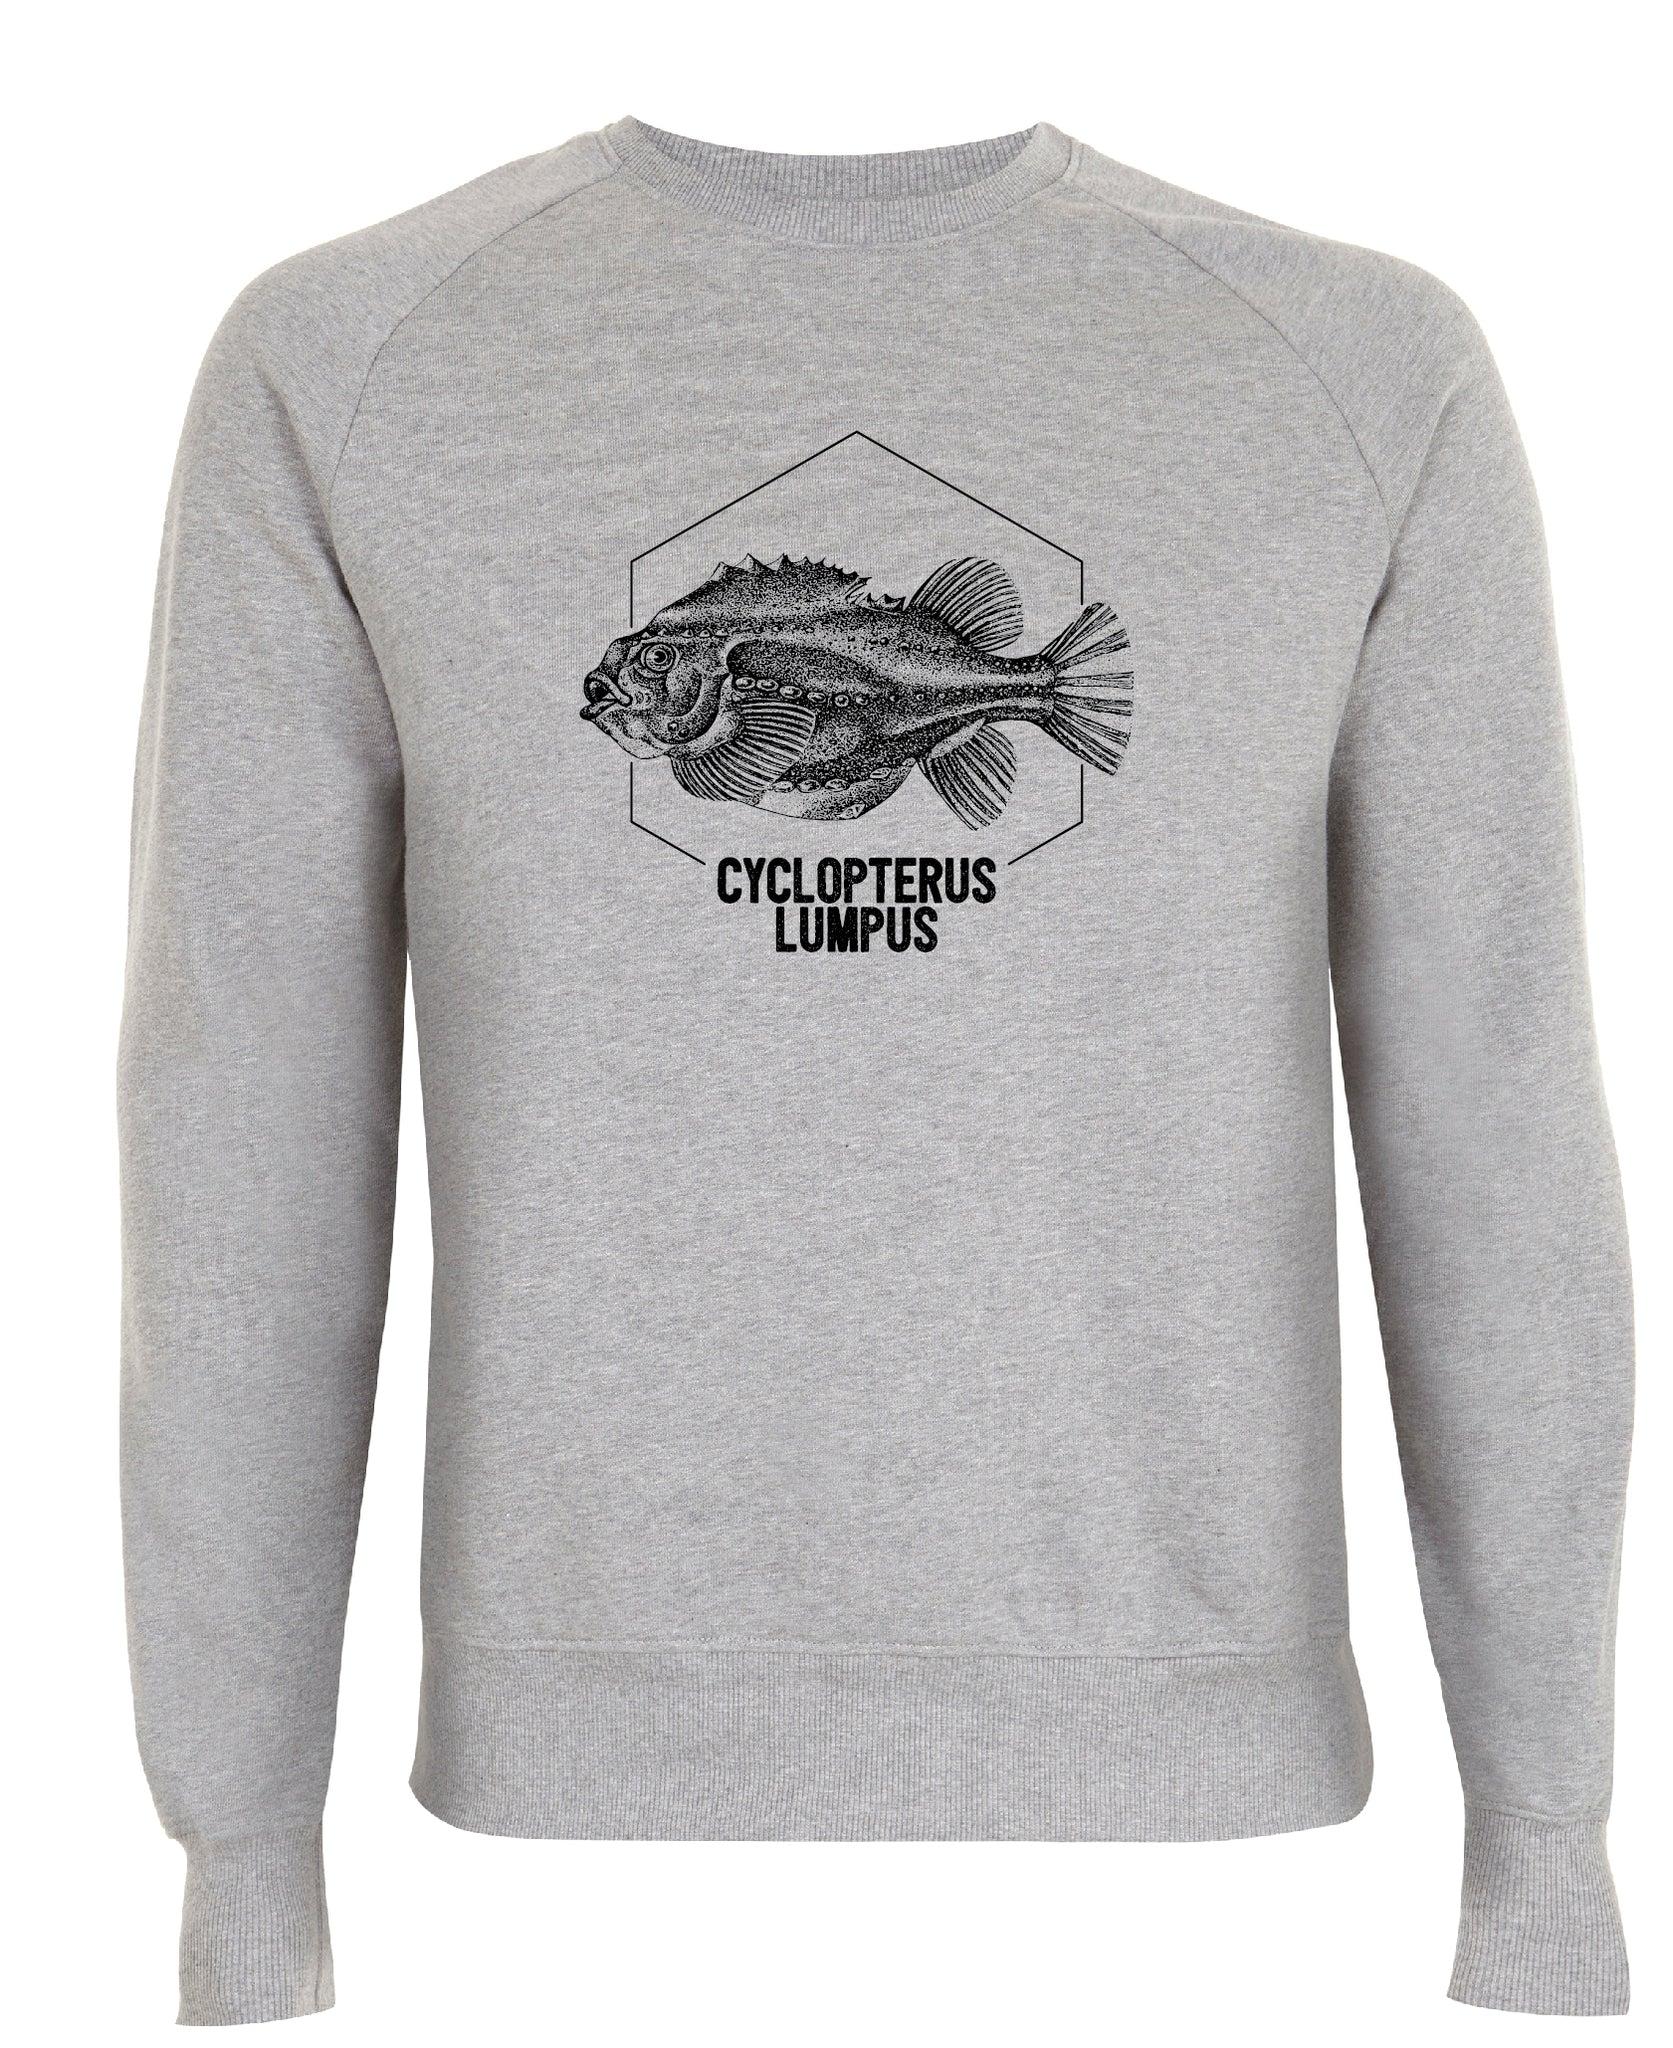 Cyclopterus lumpus sweater